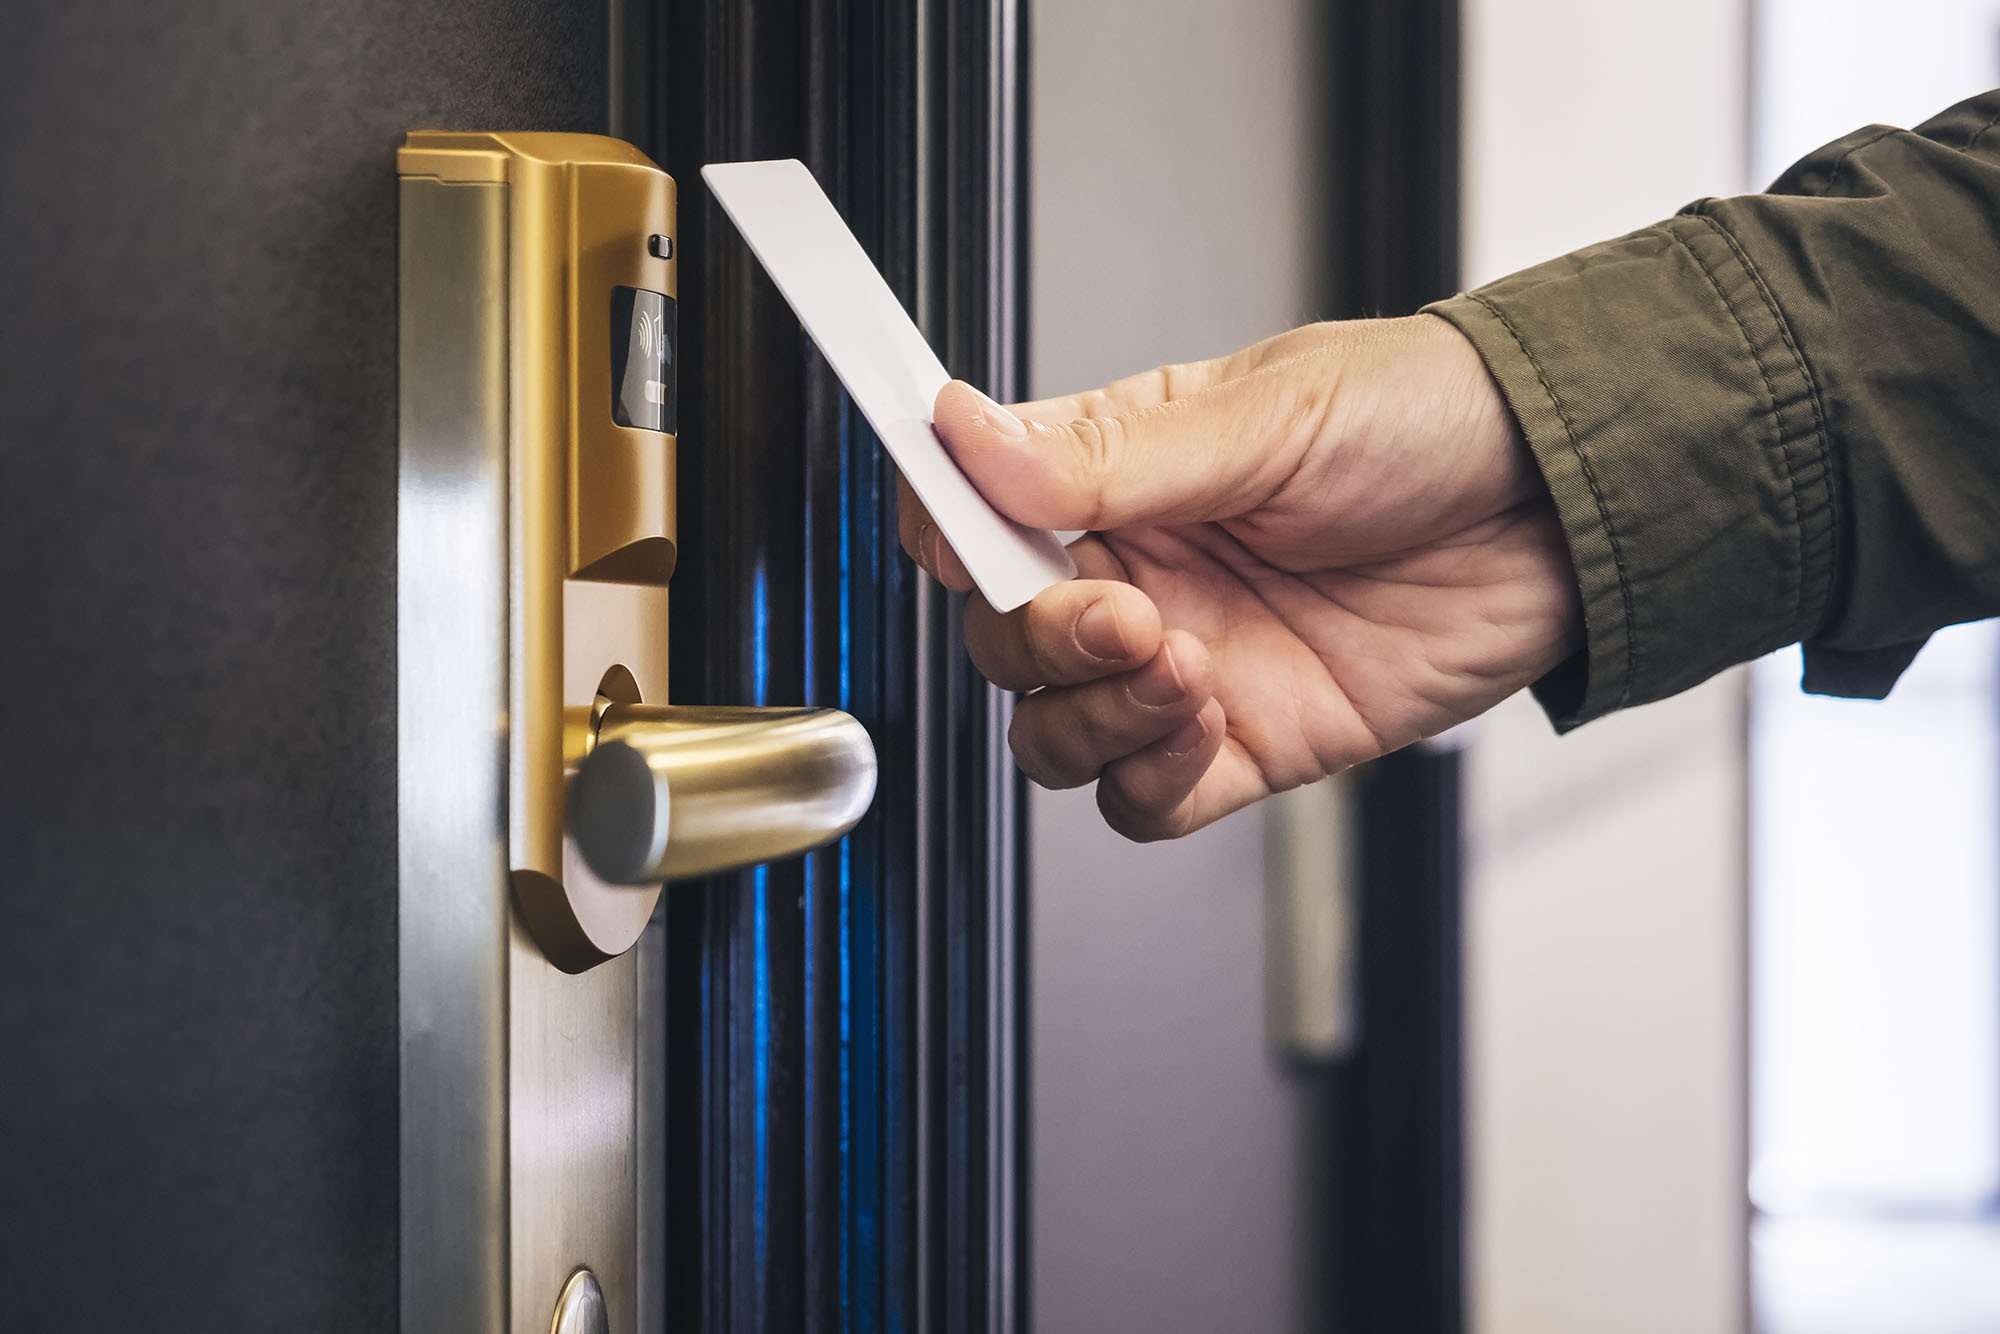 How hackers can break into your hotel room with ease